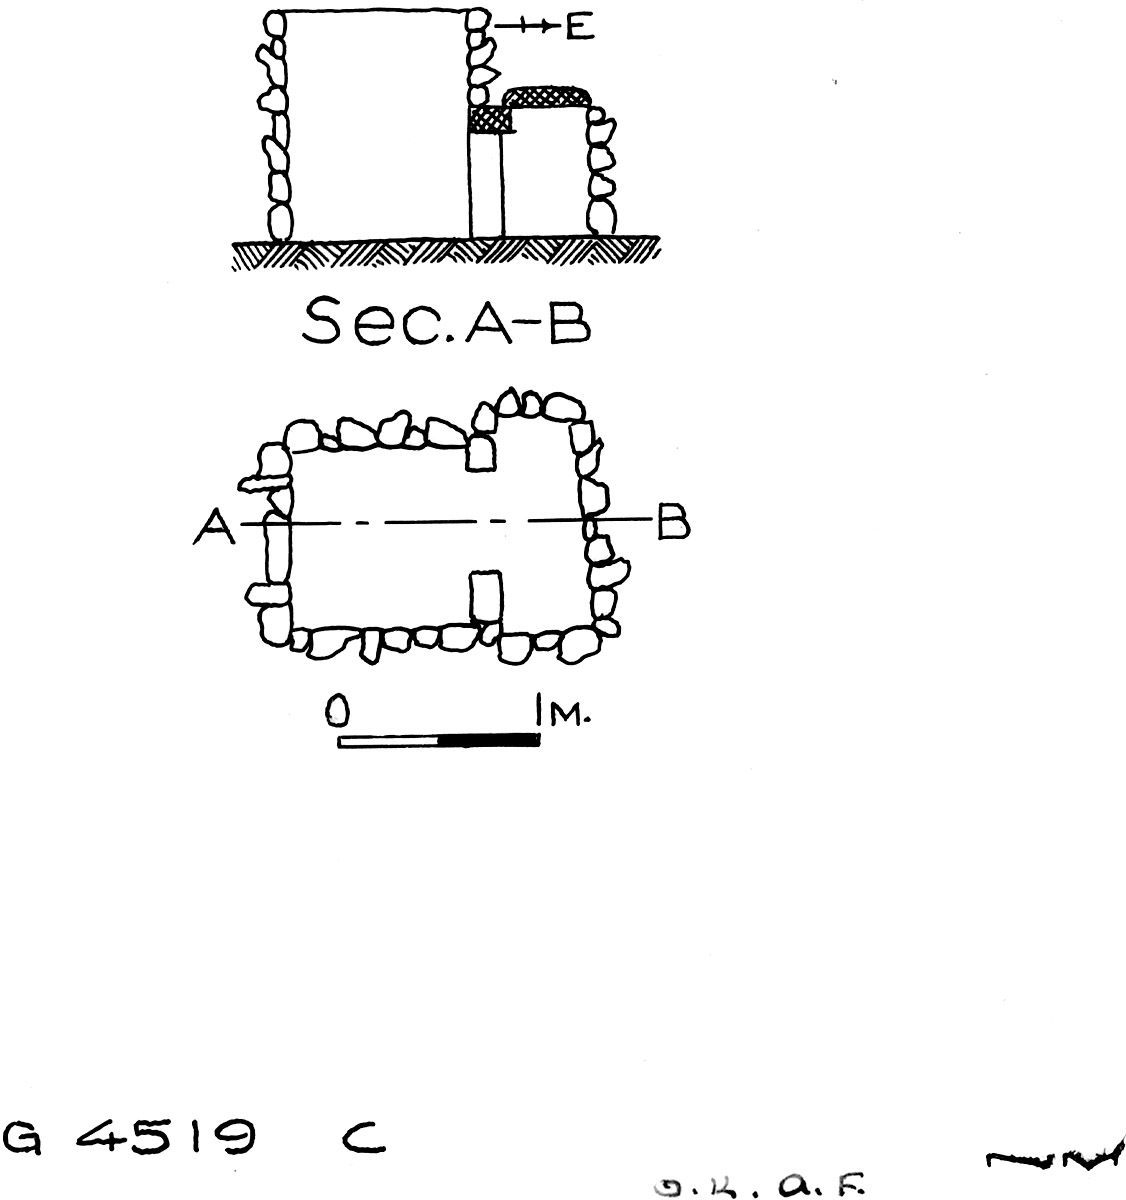 Maps and plans: G 4519, Shaft C